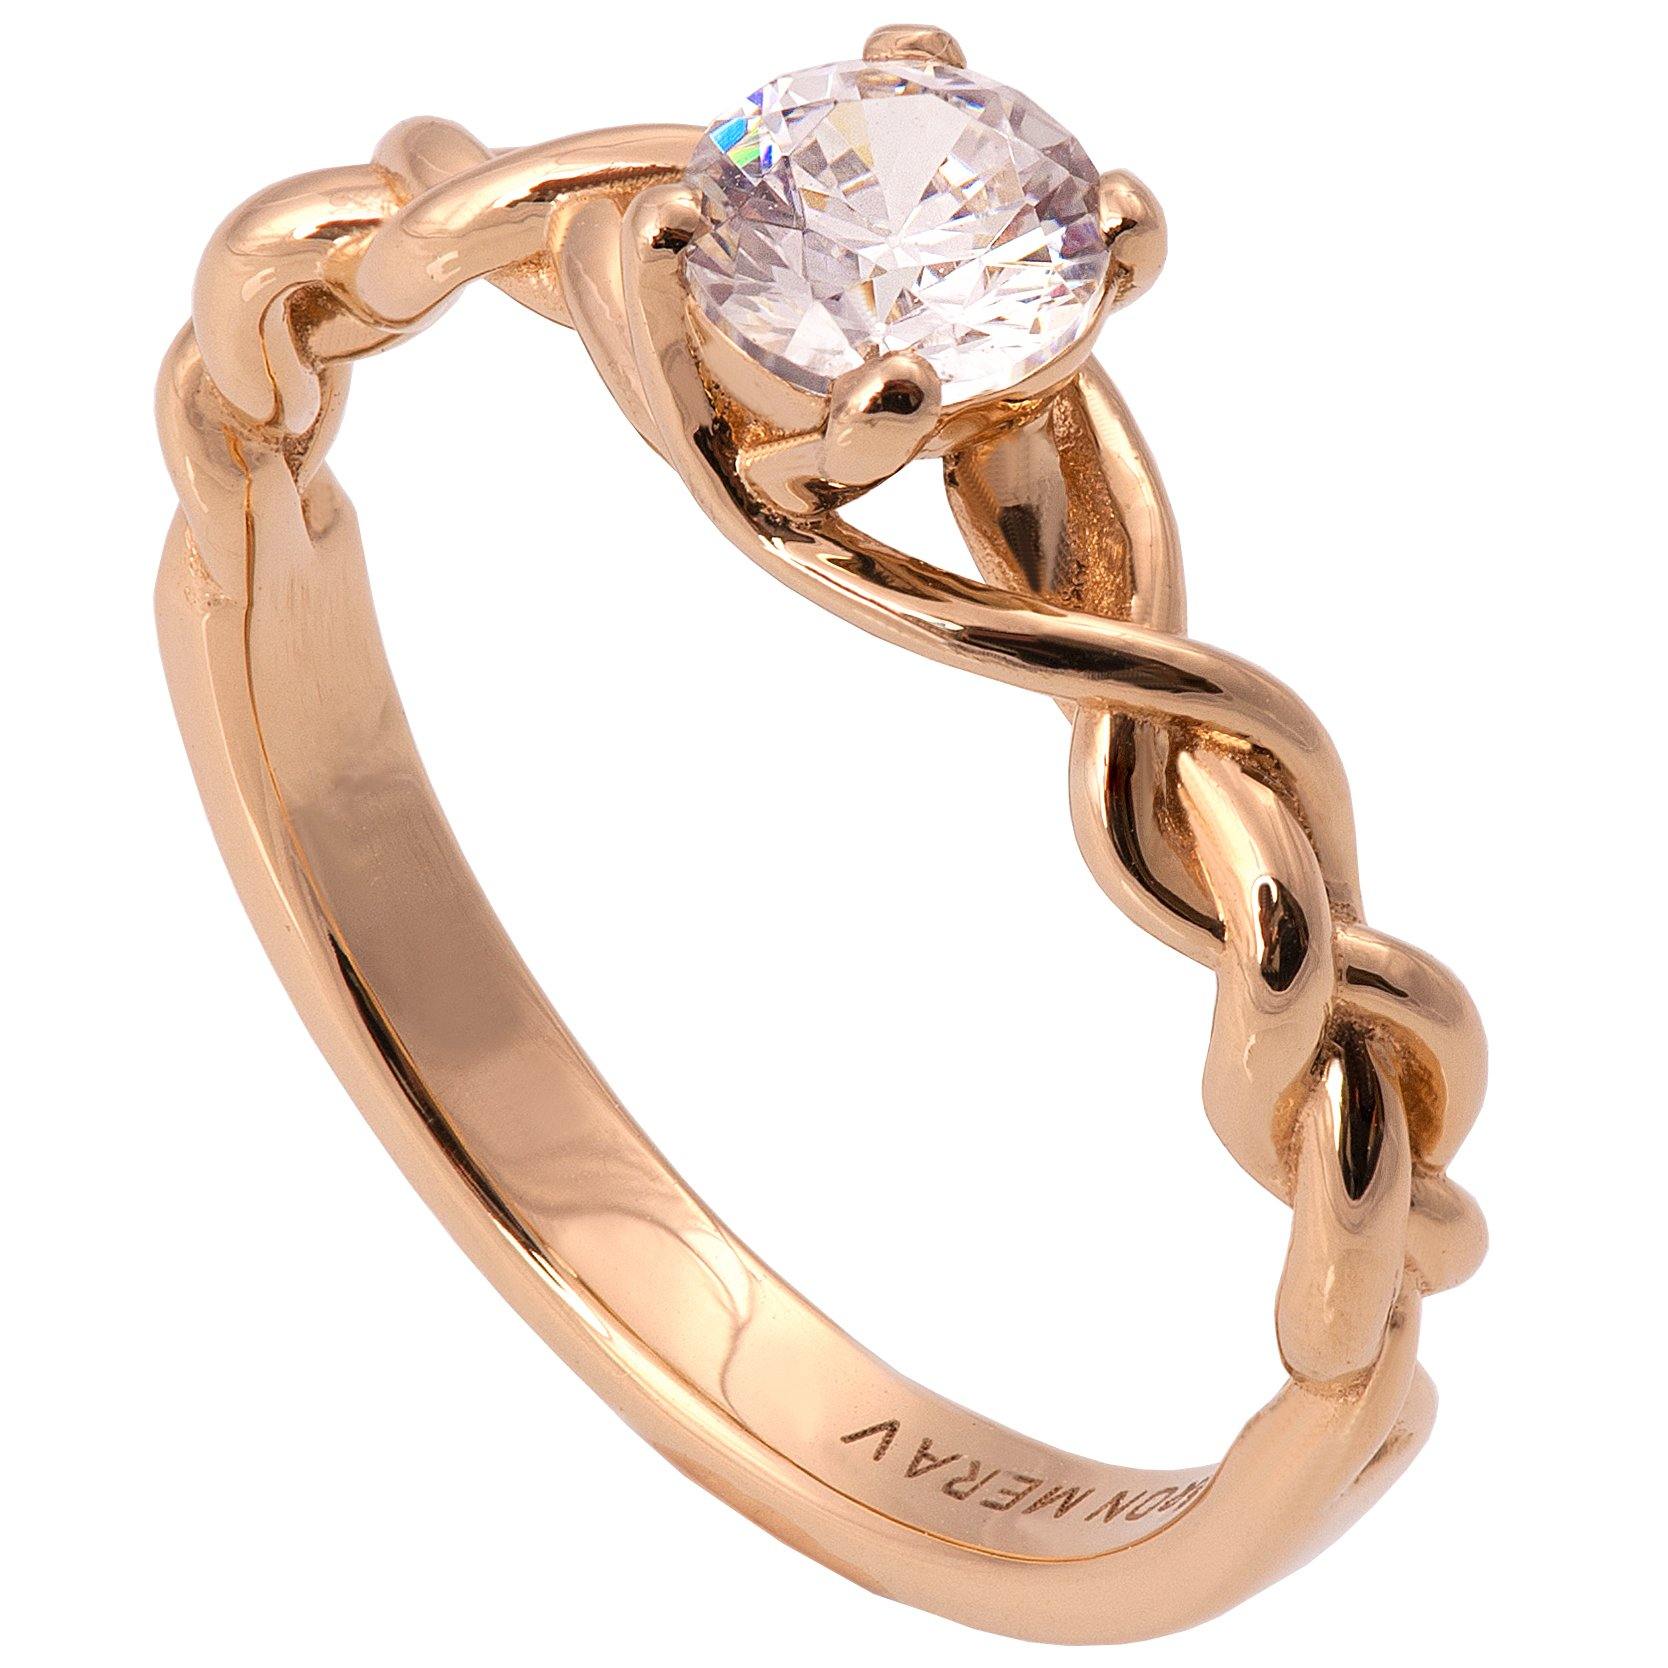 Solid 18K Rose Gold and Diamonds Braided Solitaire Engagement Ring For Women Unique Sets Promise Band Celtic Woven